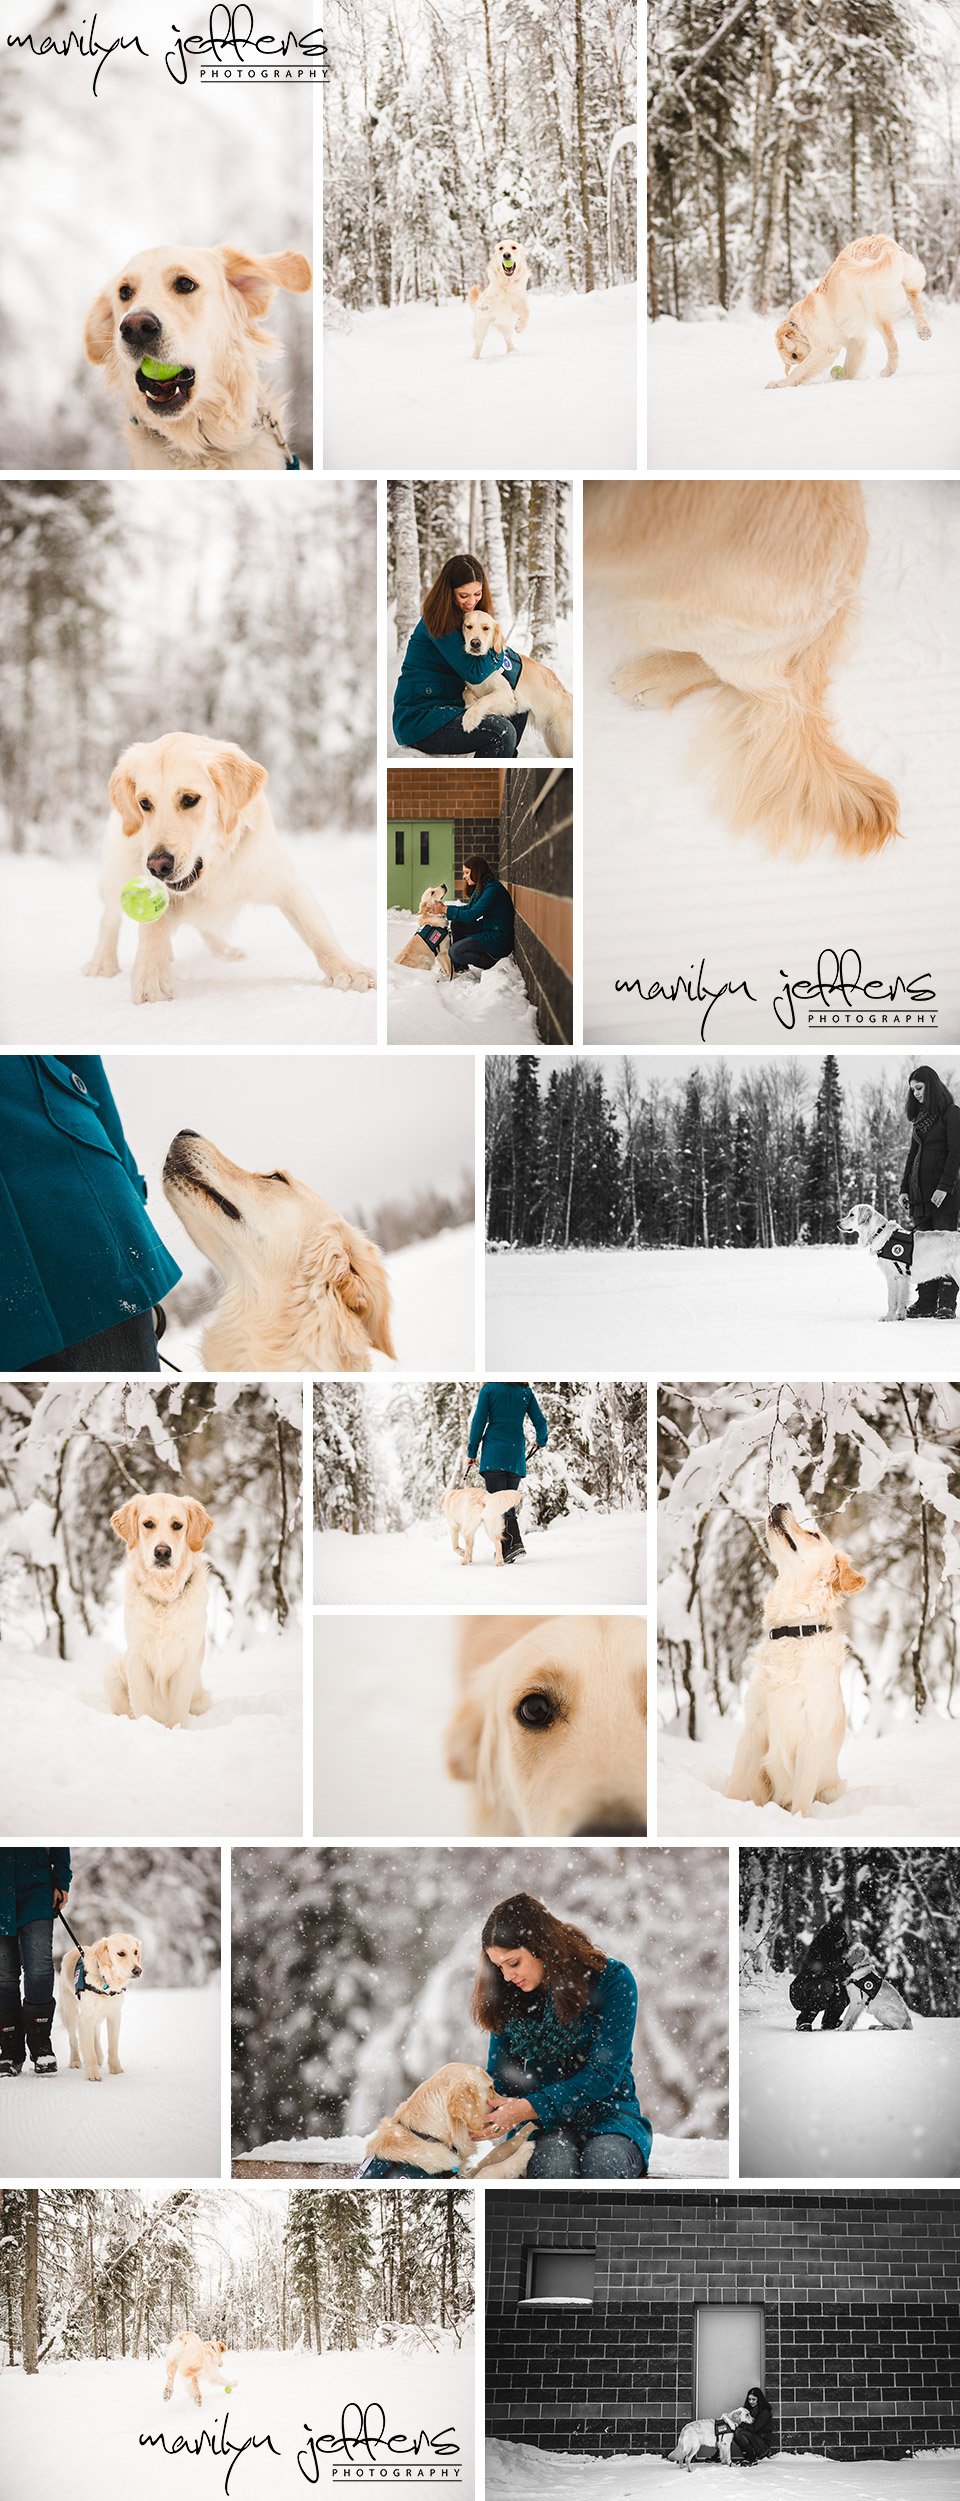 Redick_Dog_Winter_Service_Photographer_EagleRiver